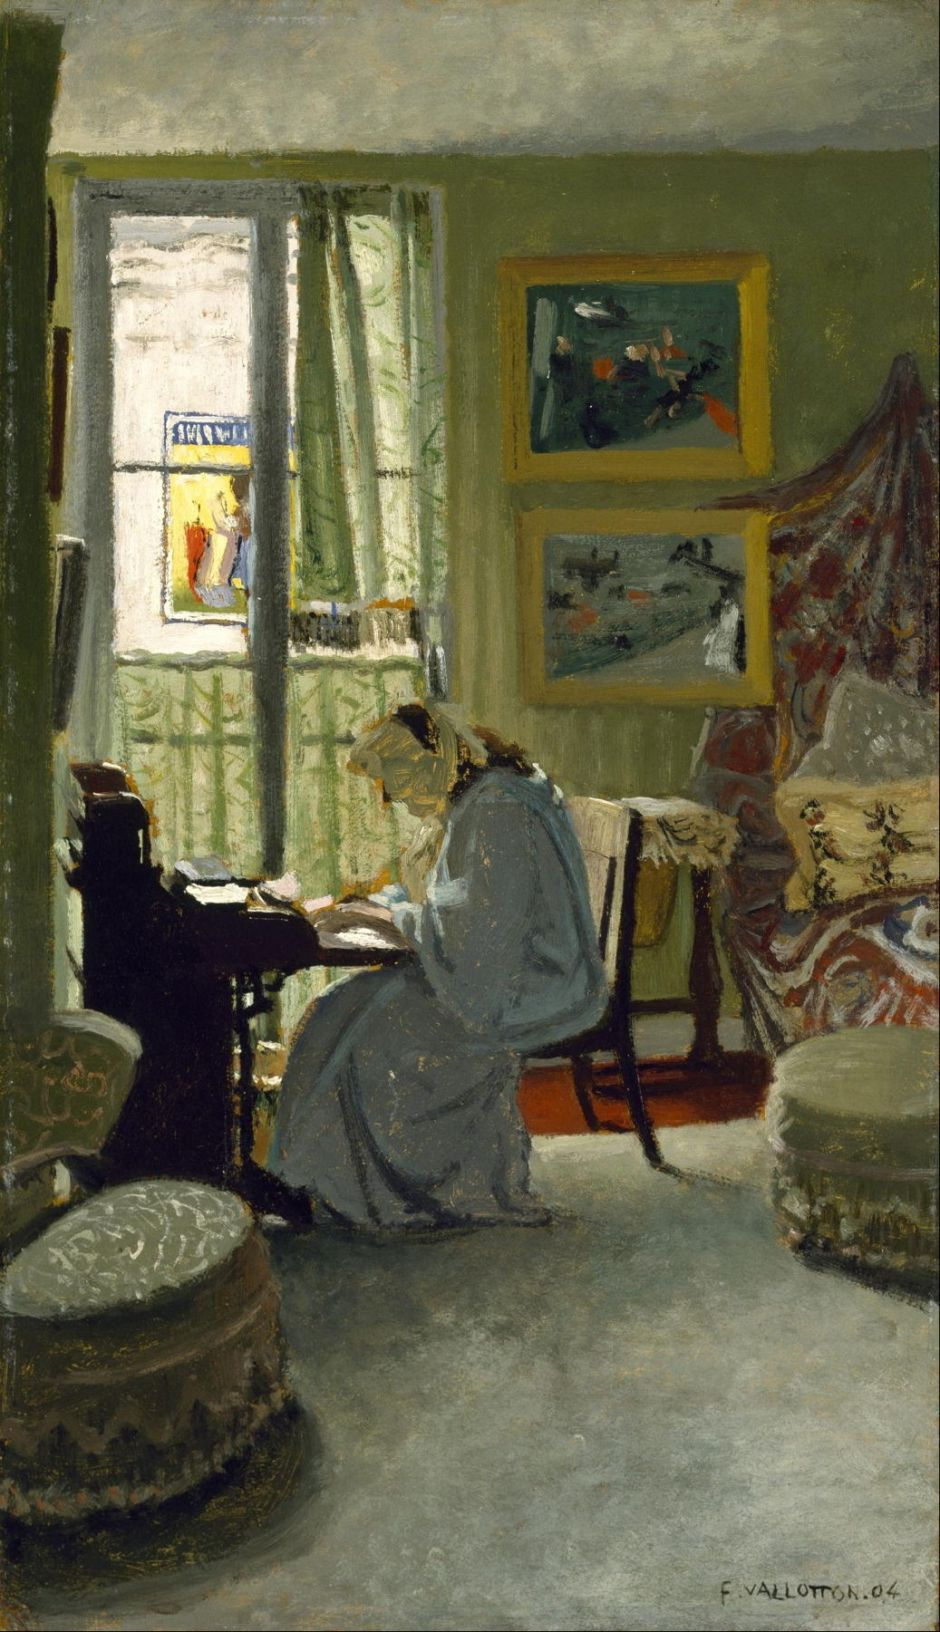 Paintings Of Flix Vallotton 2 Mysterious Interiors The Eclectic Light Company